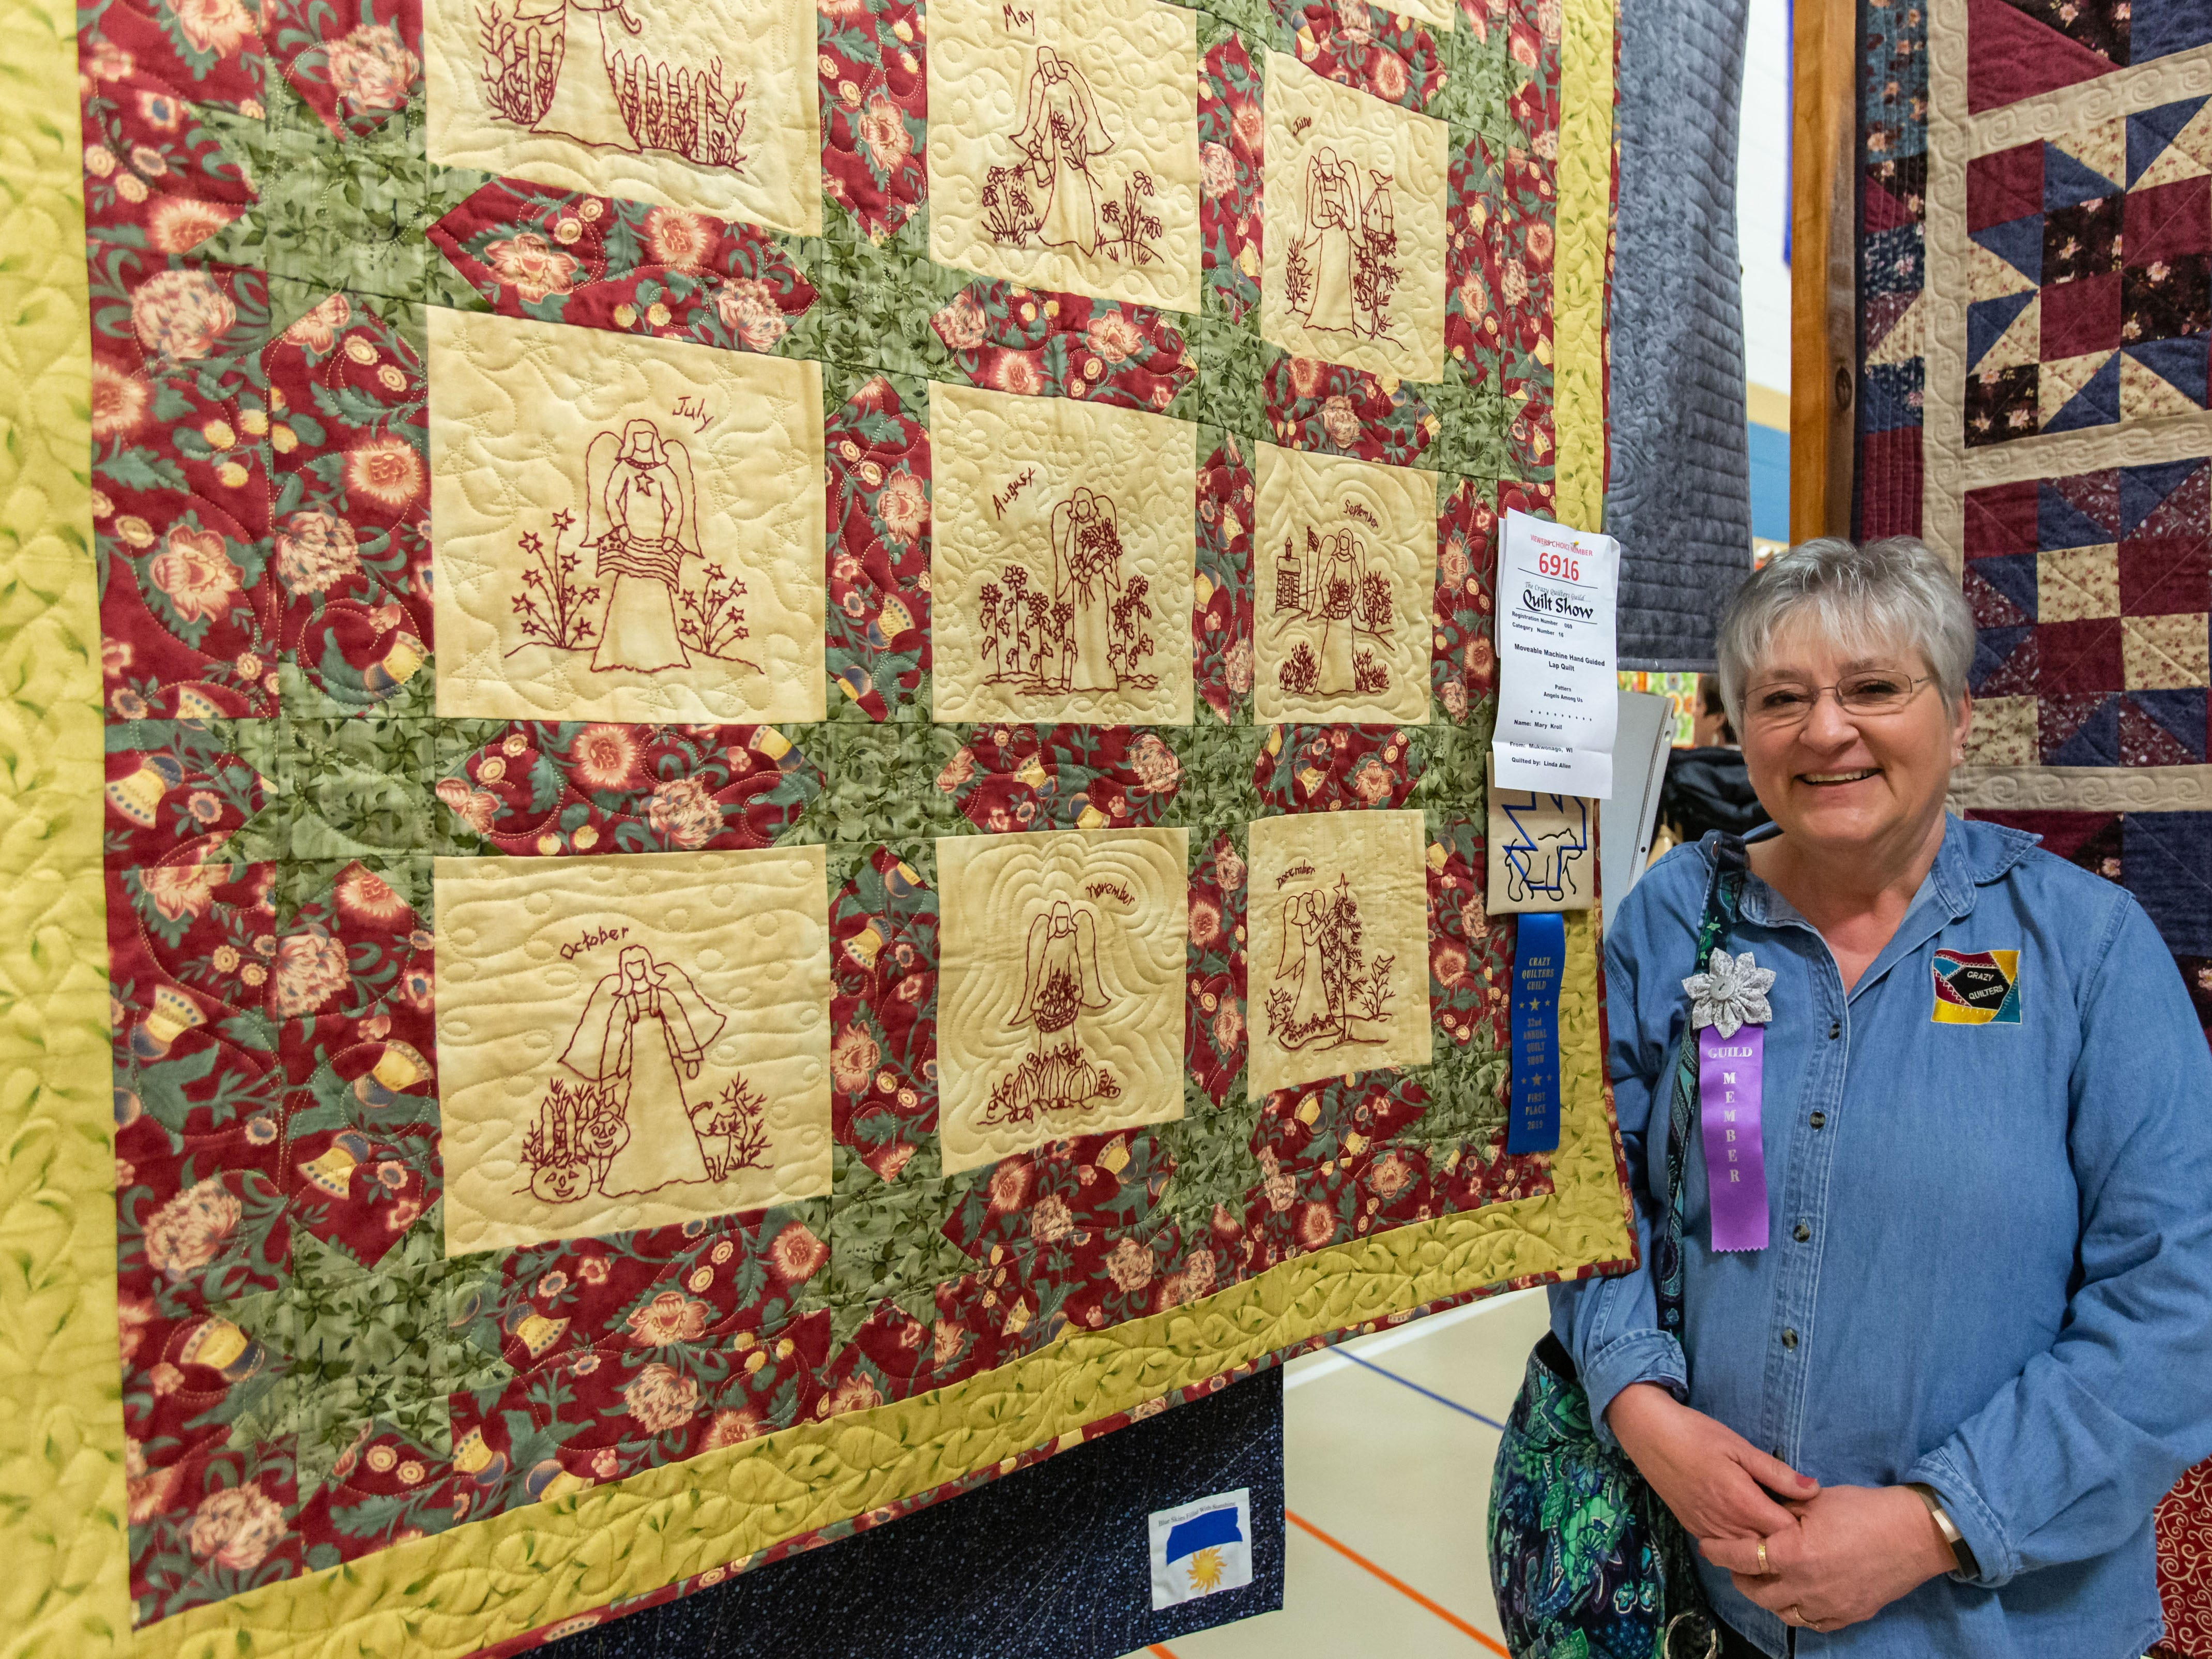 Mary Kroll of Mukwonago won 1st place for her Angels Among Us patterns on this quilt (at left) by Linda Allen during the Mukwonago Crazy Quilters 32nd annual Quilt Show at Park View Middle School on Saturday, March 30, 2019.